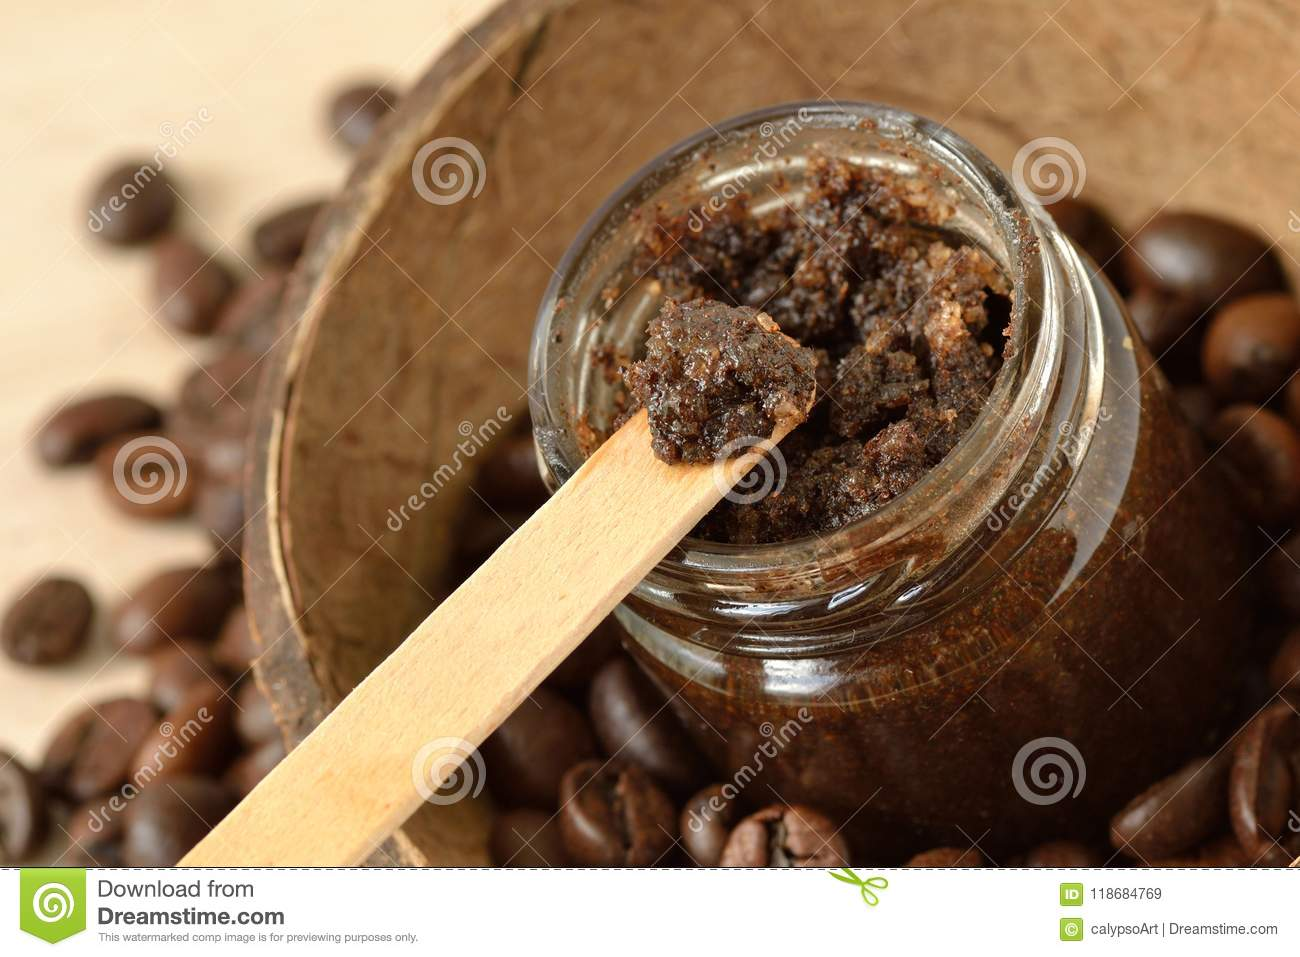 Homemade coffee scrub in a glass jar over coconut shell and coffee beans